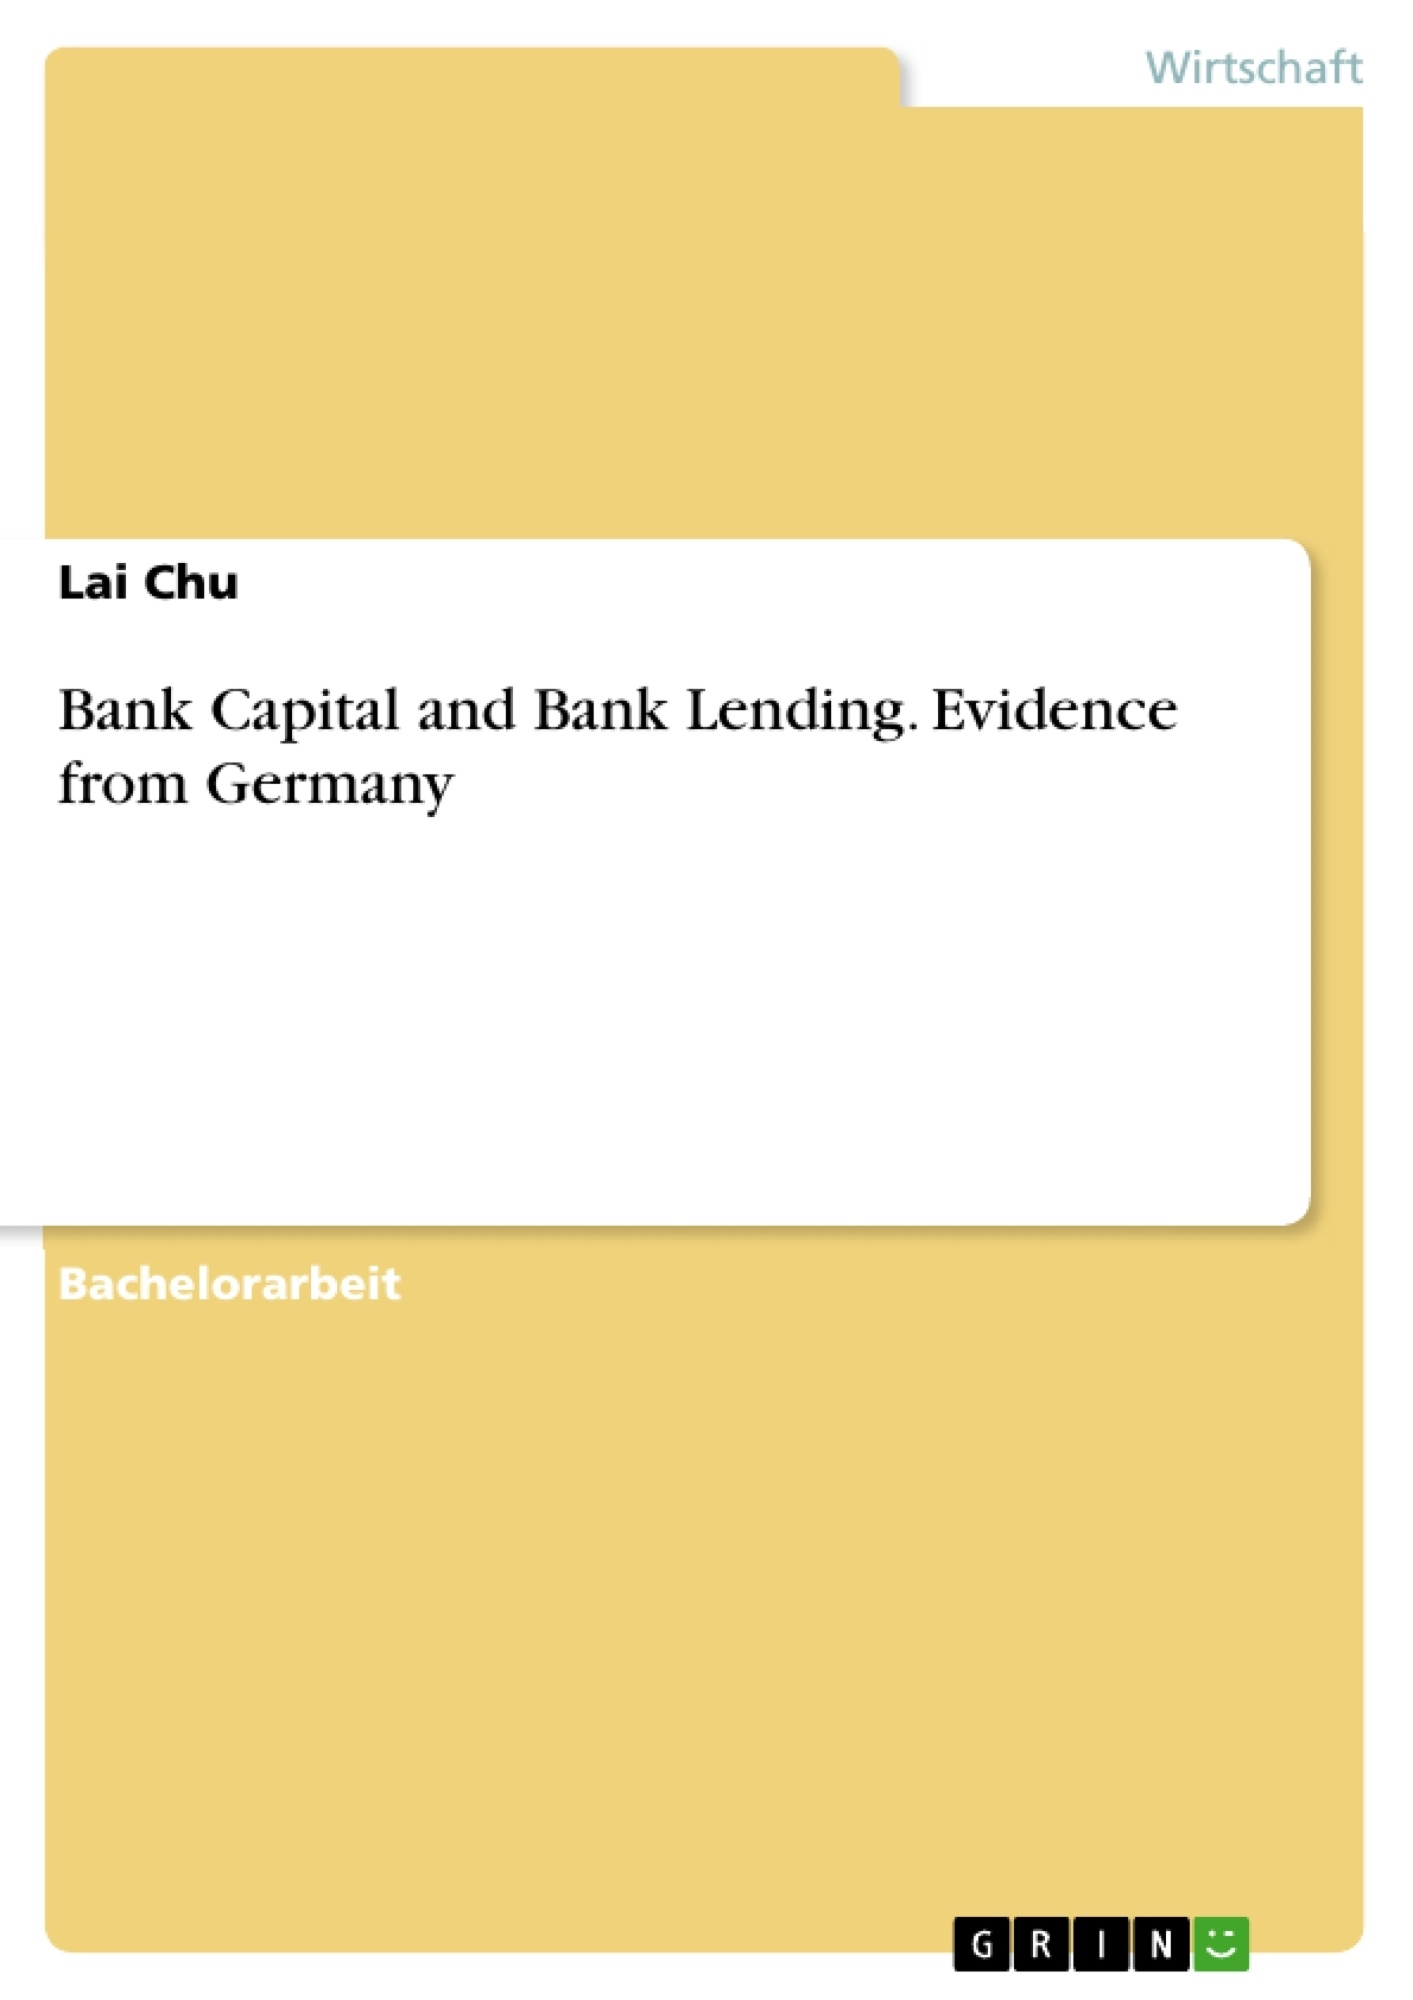 Titel: Bank Capital and Bank Lending. Evidence from Germany